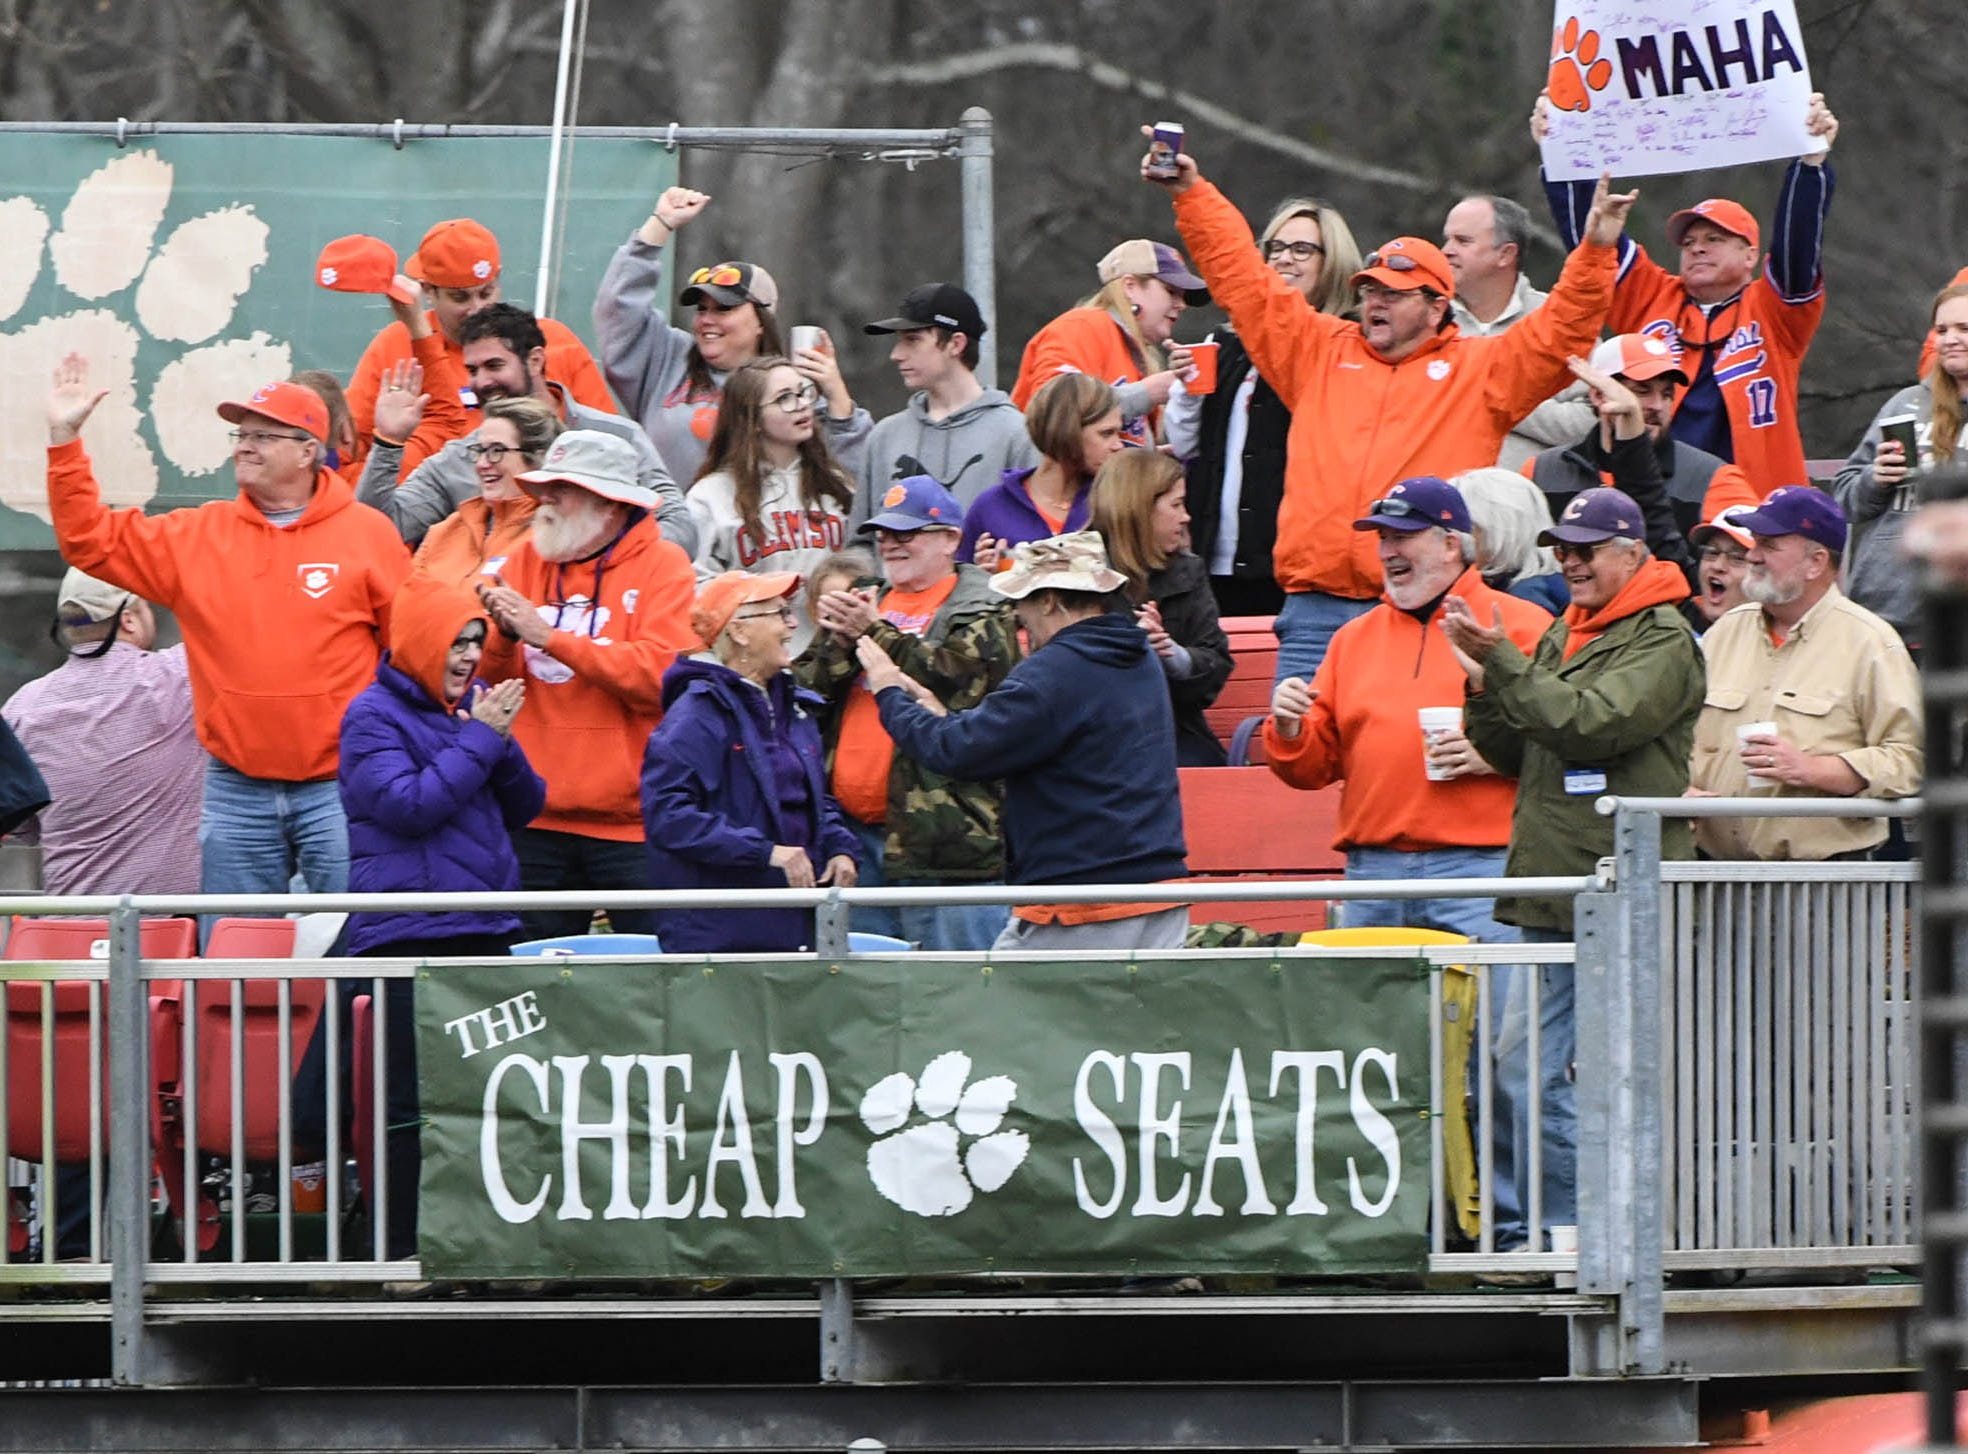 Cheap seats fans cheer after Clemson junior Logan Davidson(8) hit a three-run home run against South Alabama during the bottom of the fifth inning at Doug Kingsmore Stadium in Clemson Friday, February 15, 2019.